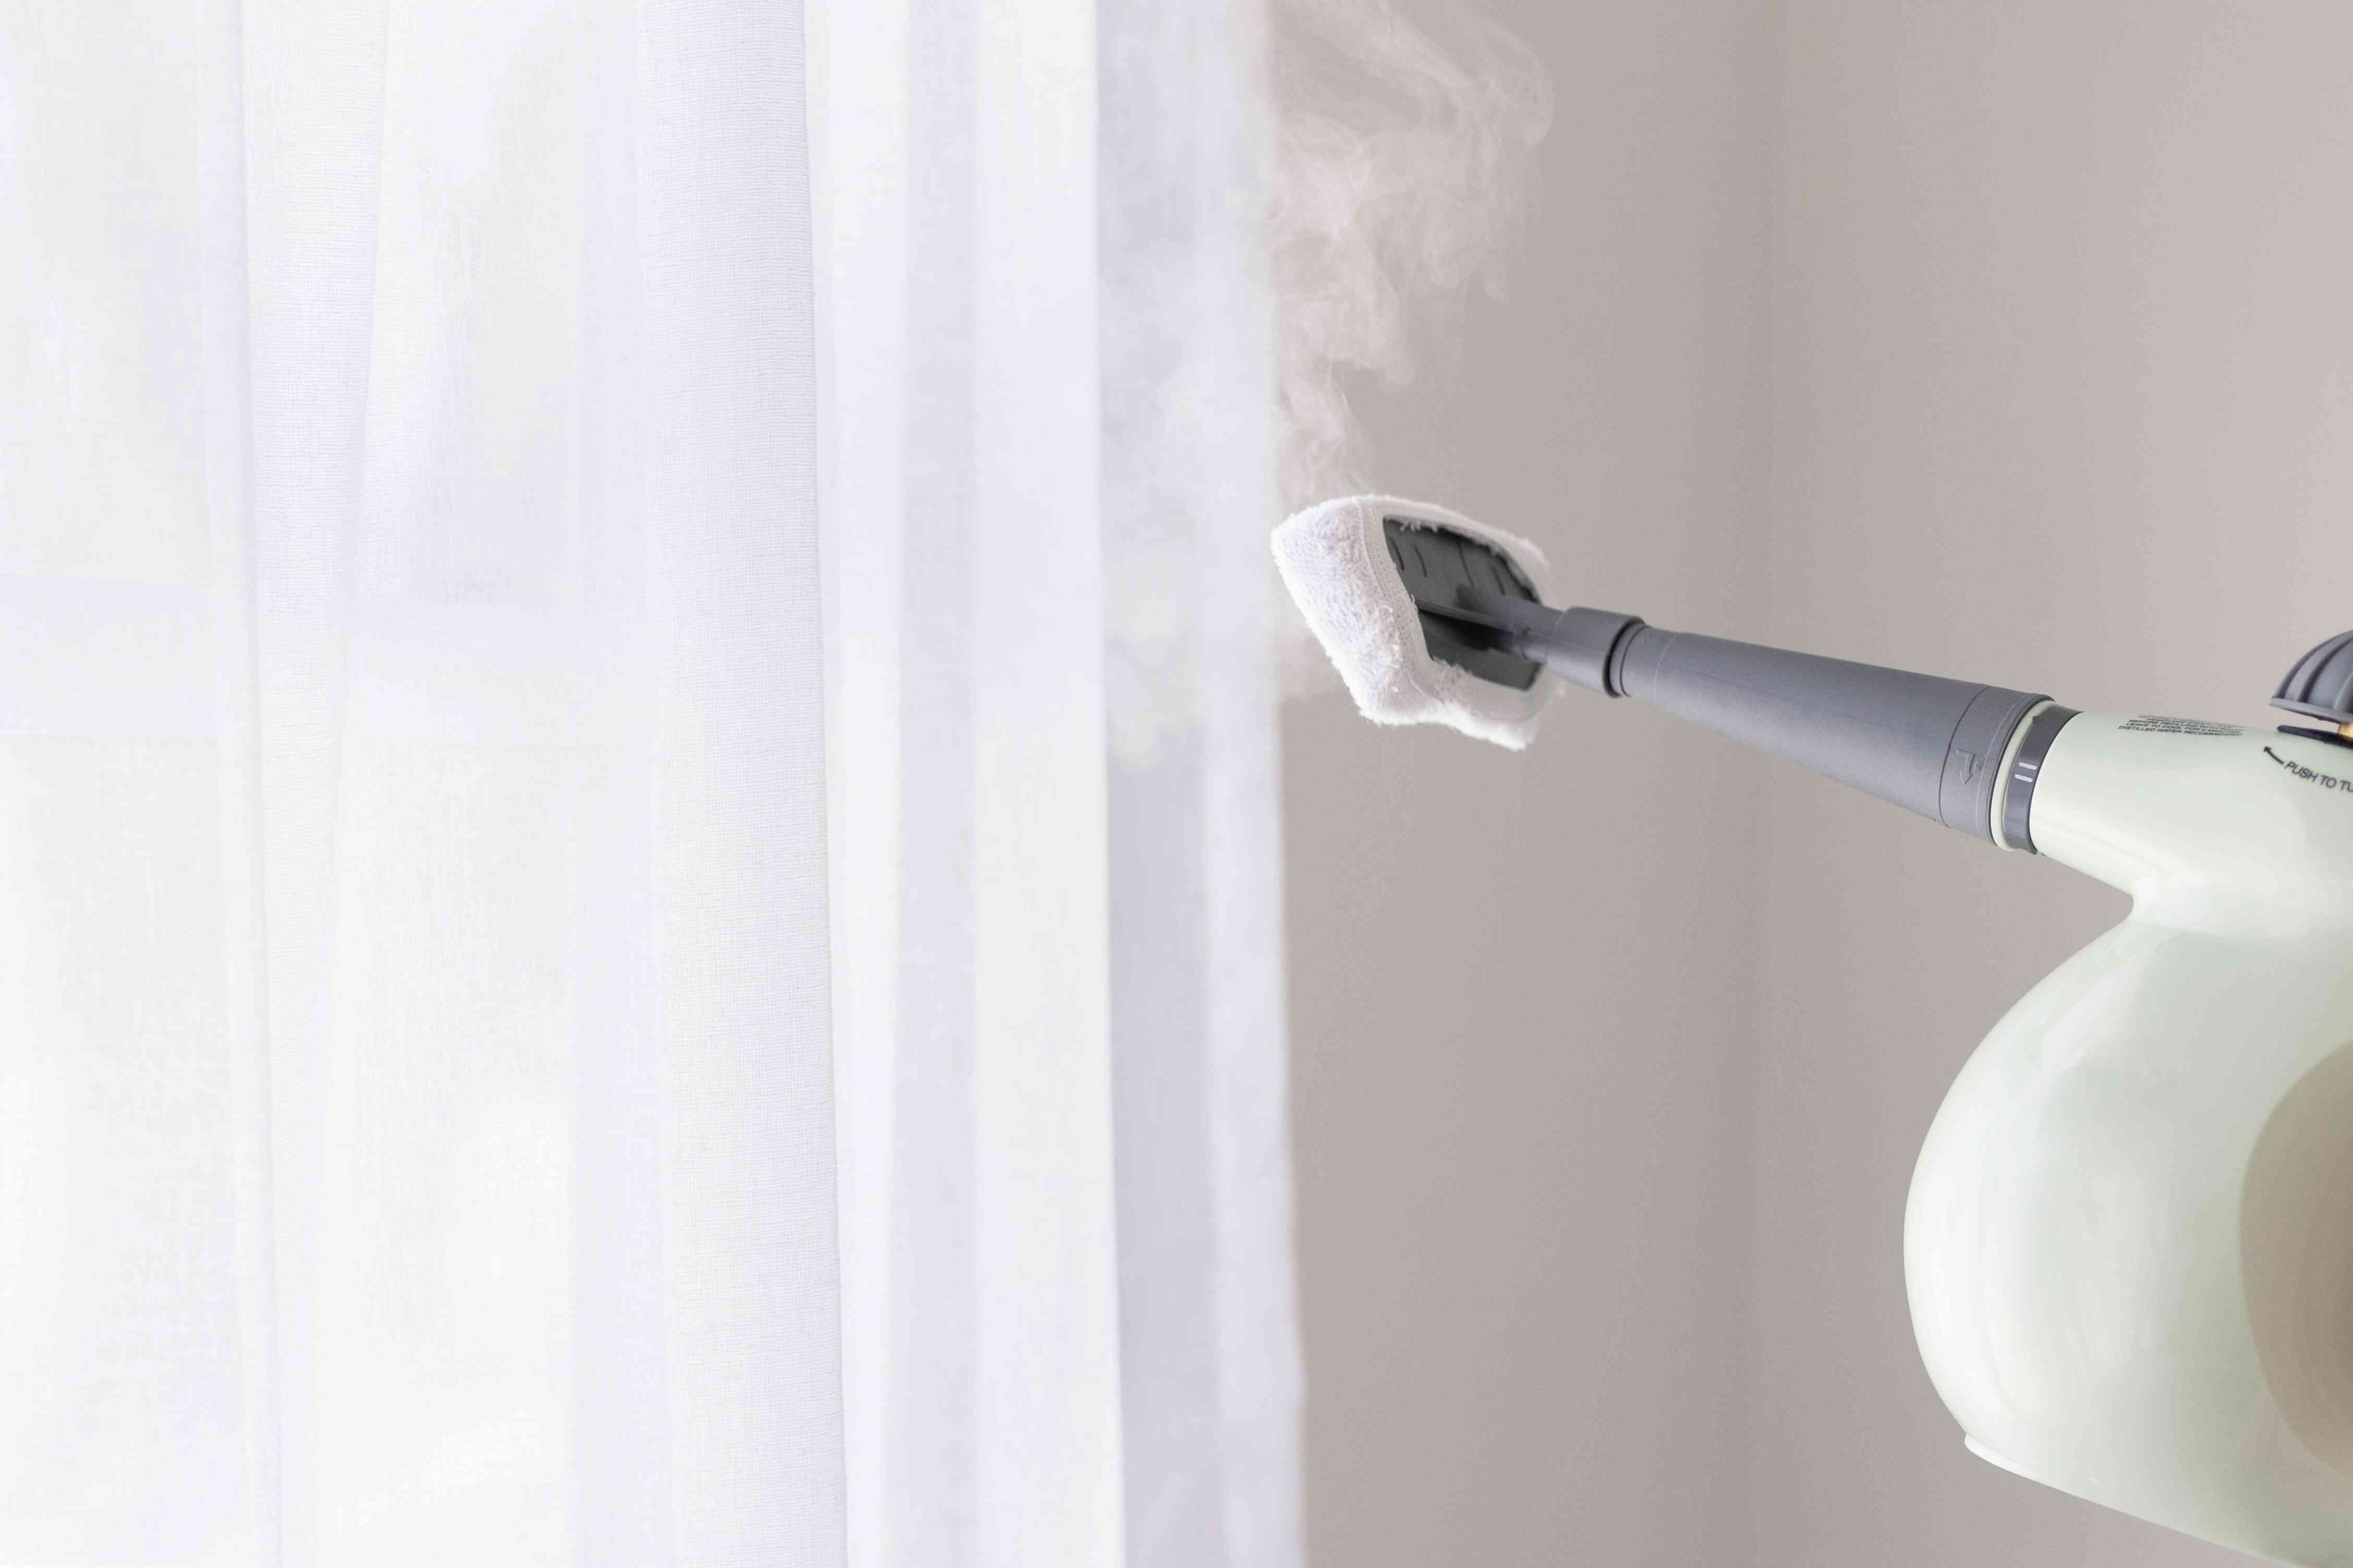 steam-cleaning a curtain